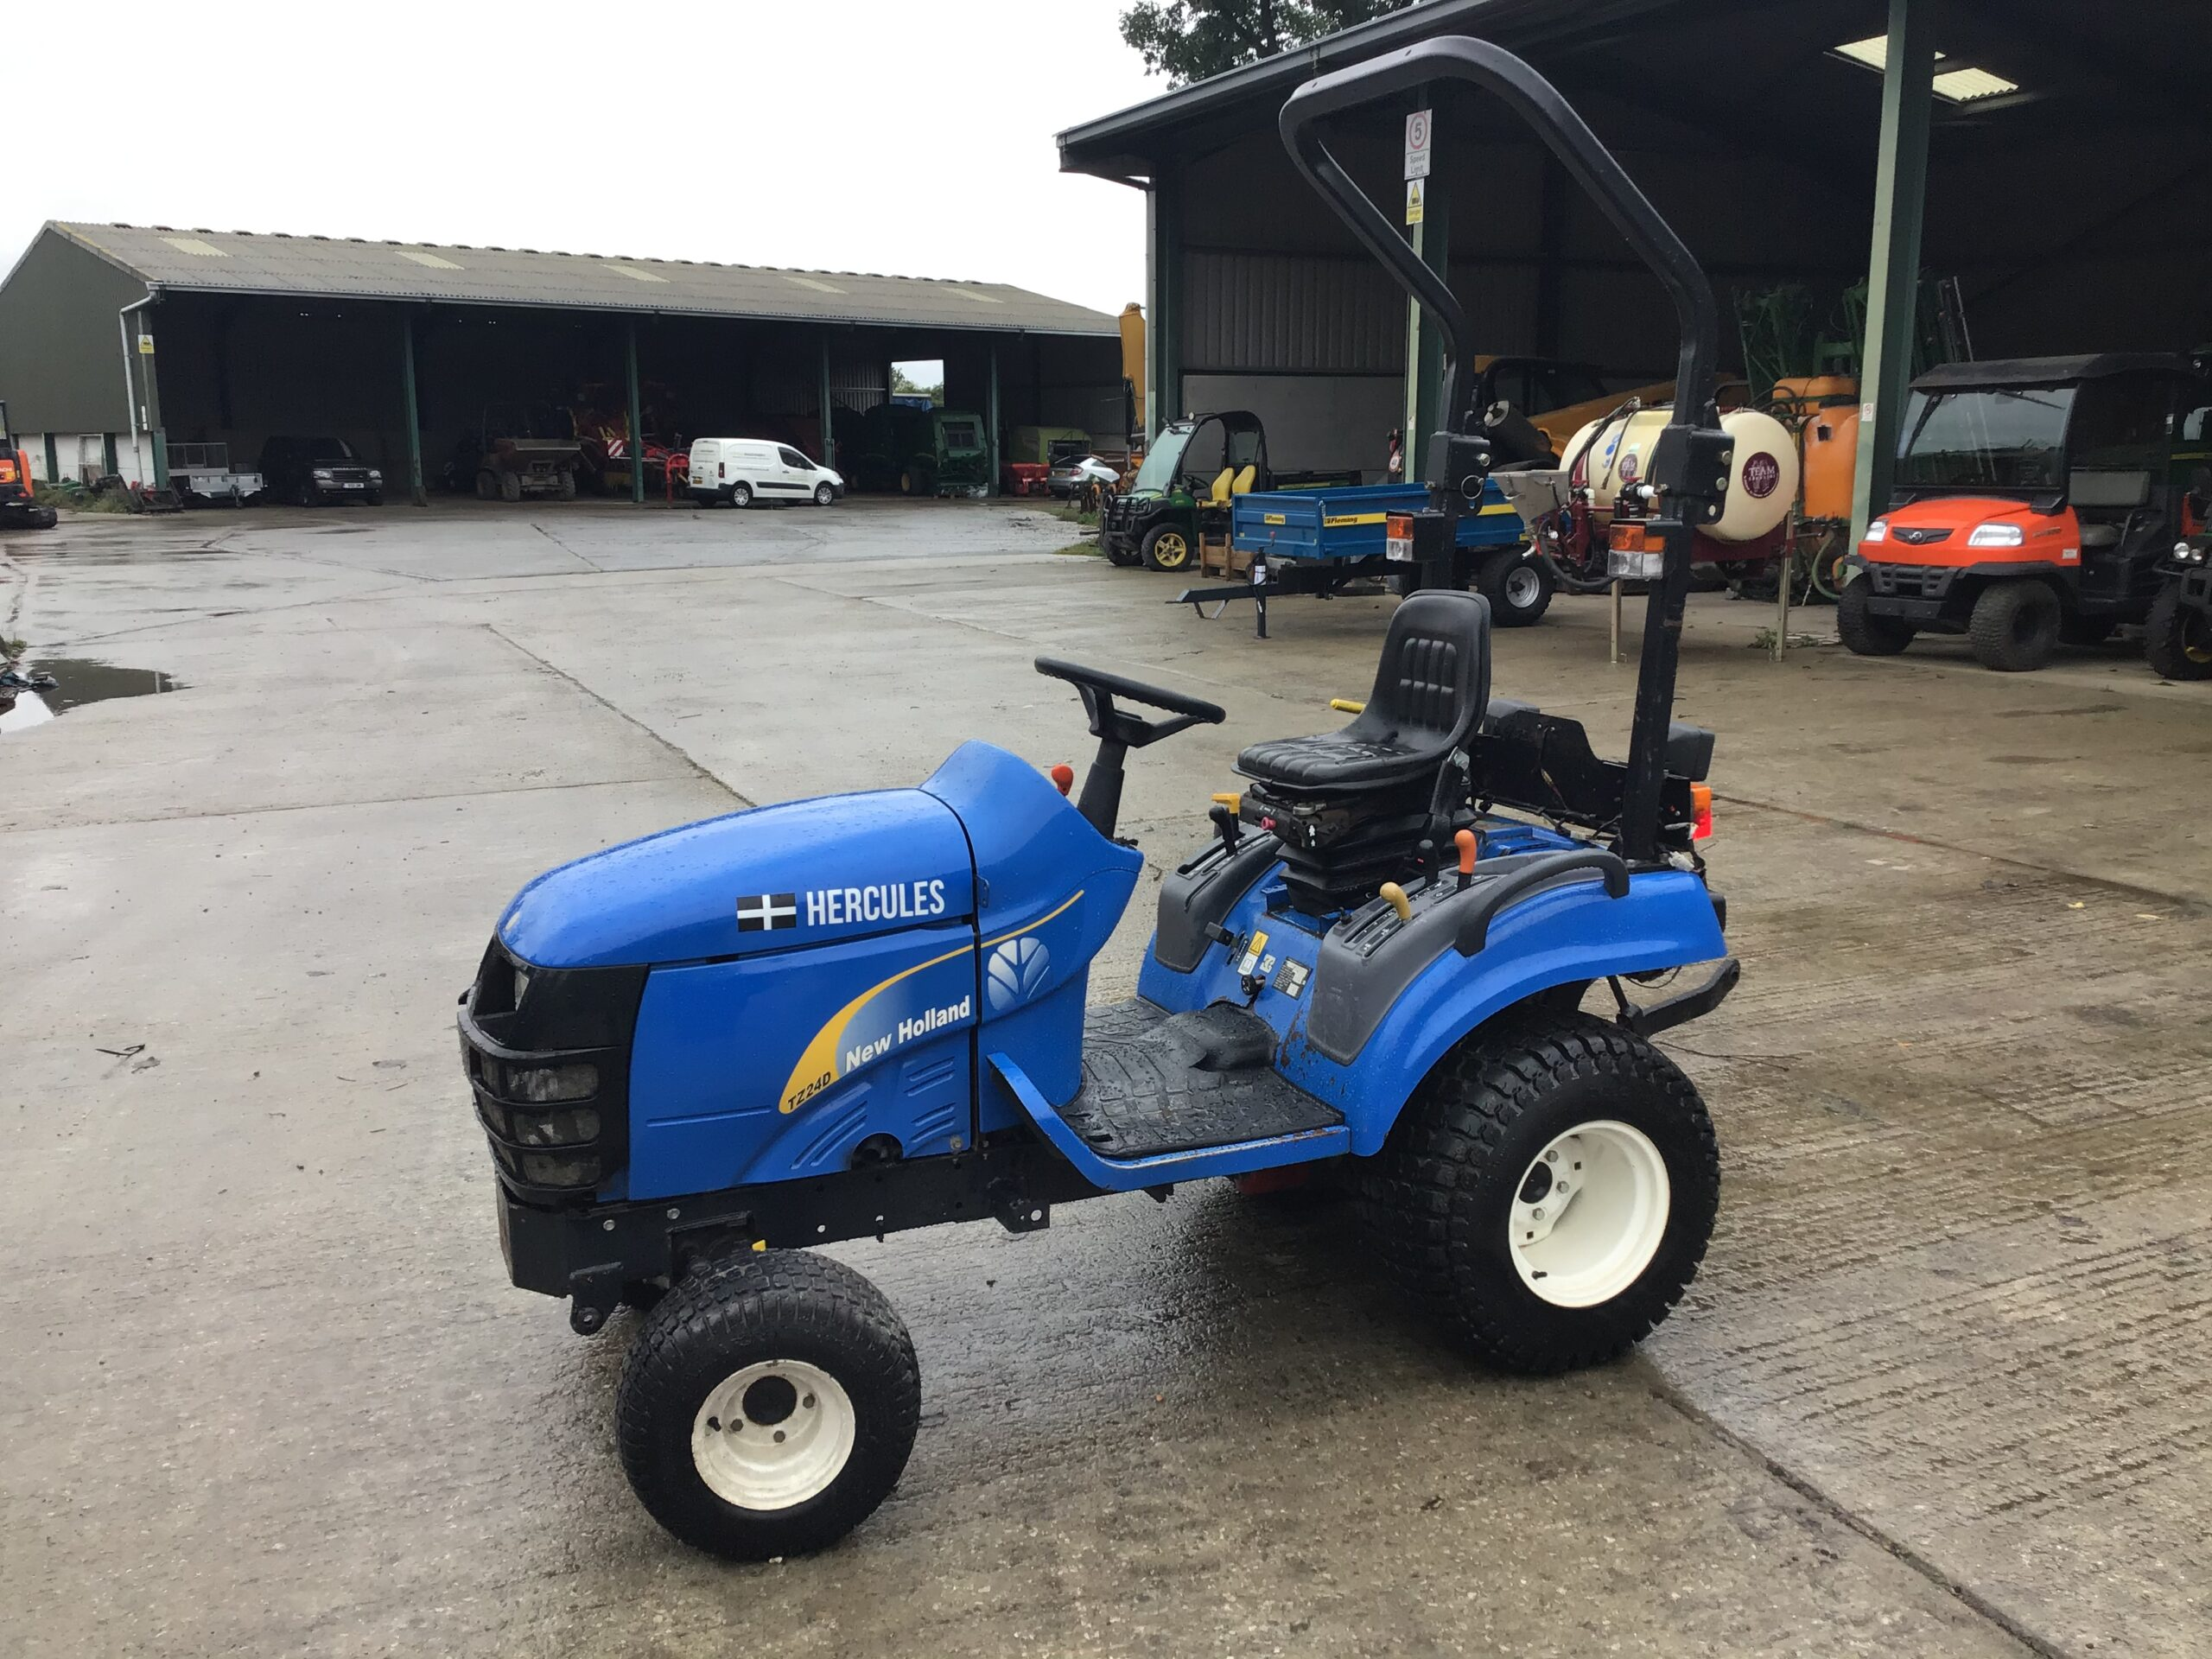 Not sure if you're looking for a new holland compact tractor or a kubota compact tractor? New Holland Tz24d Compact Tractor World Tractors